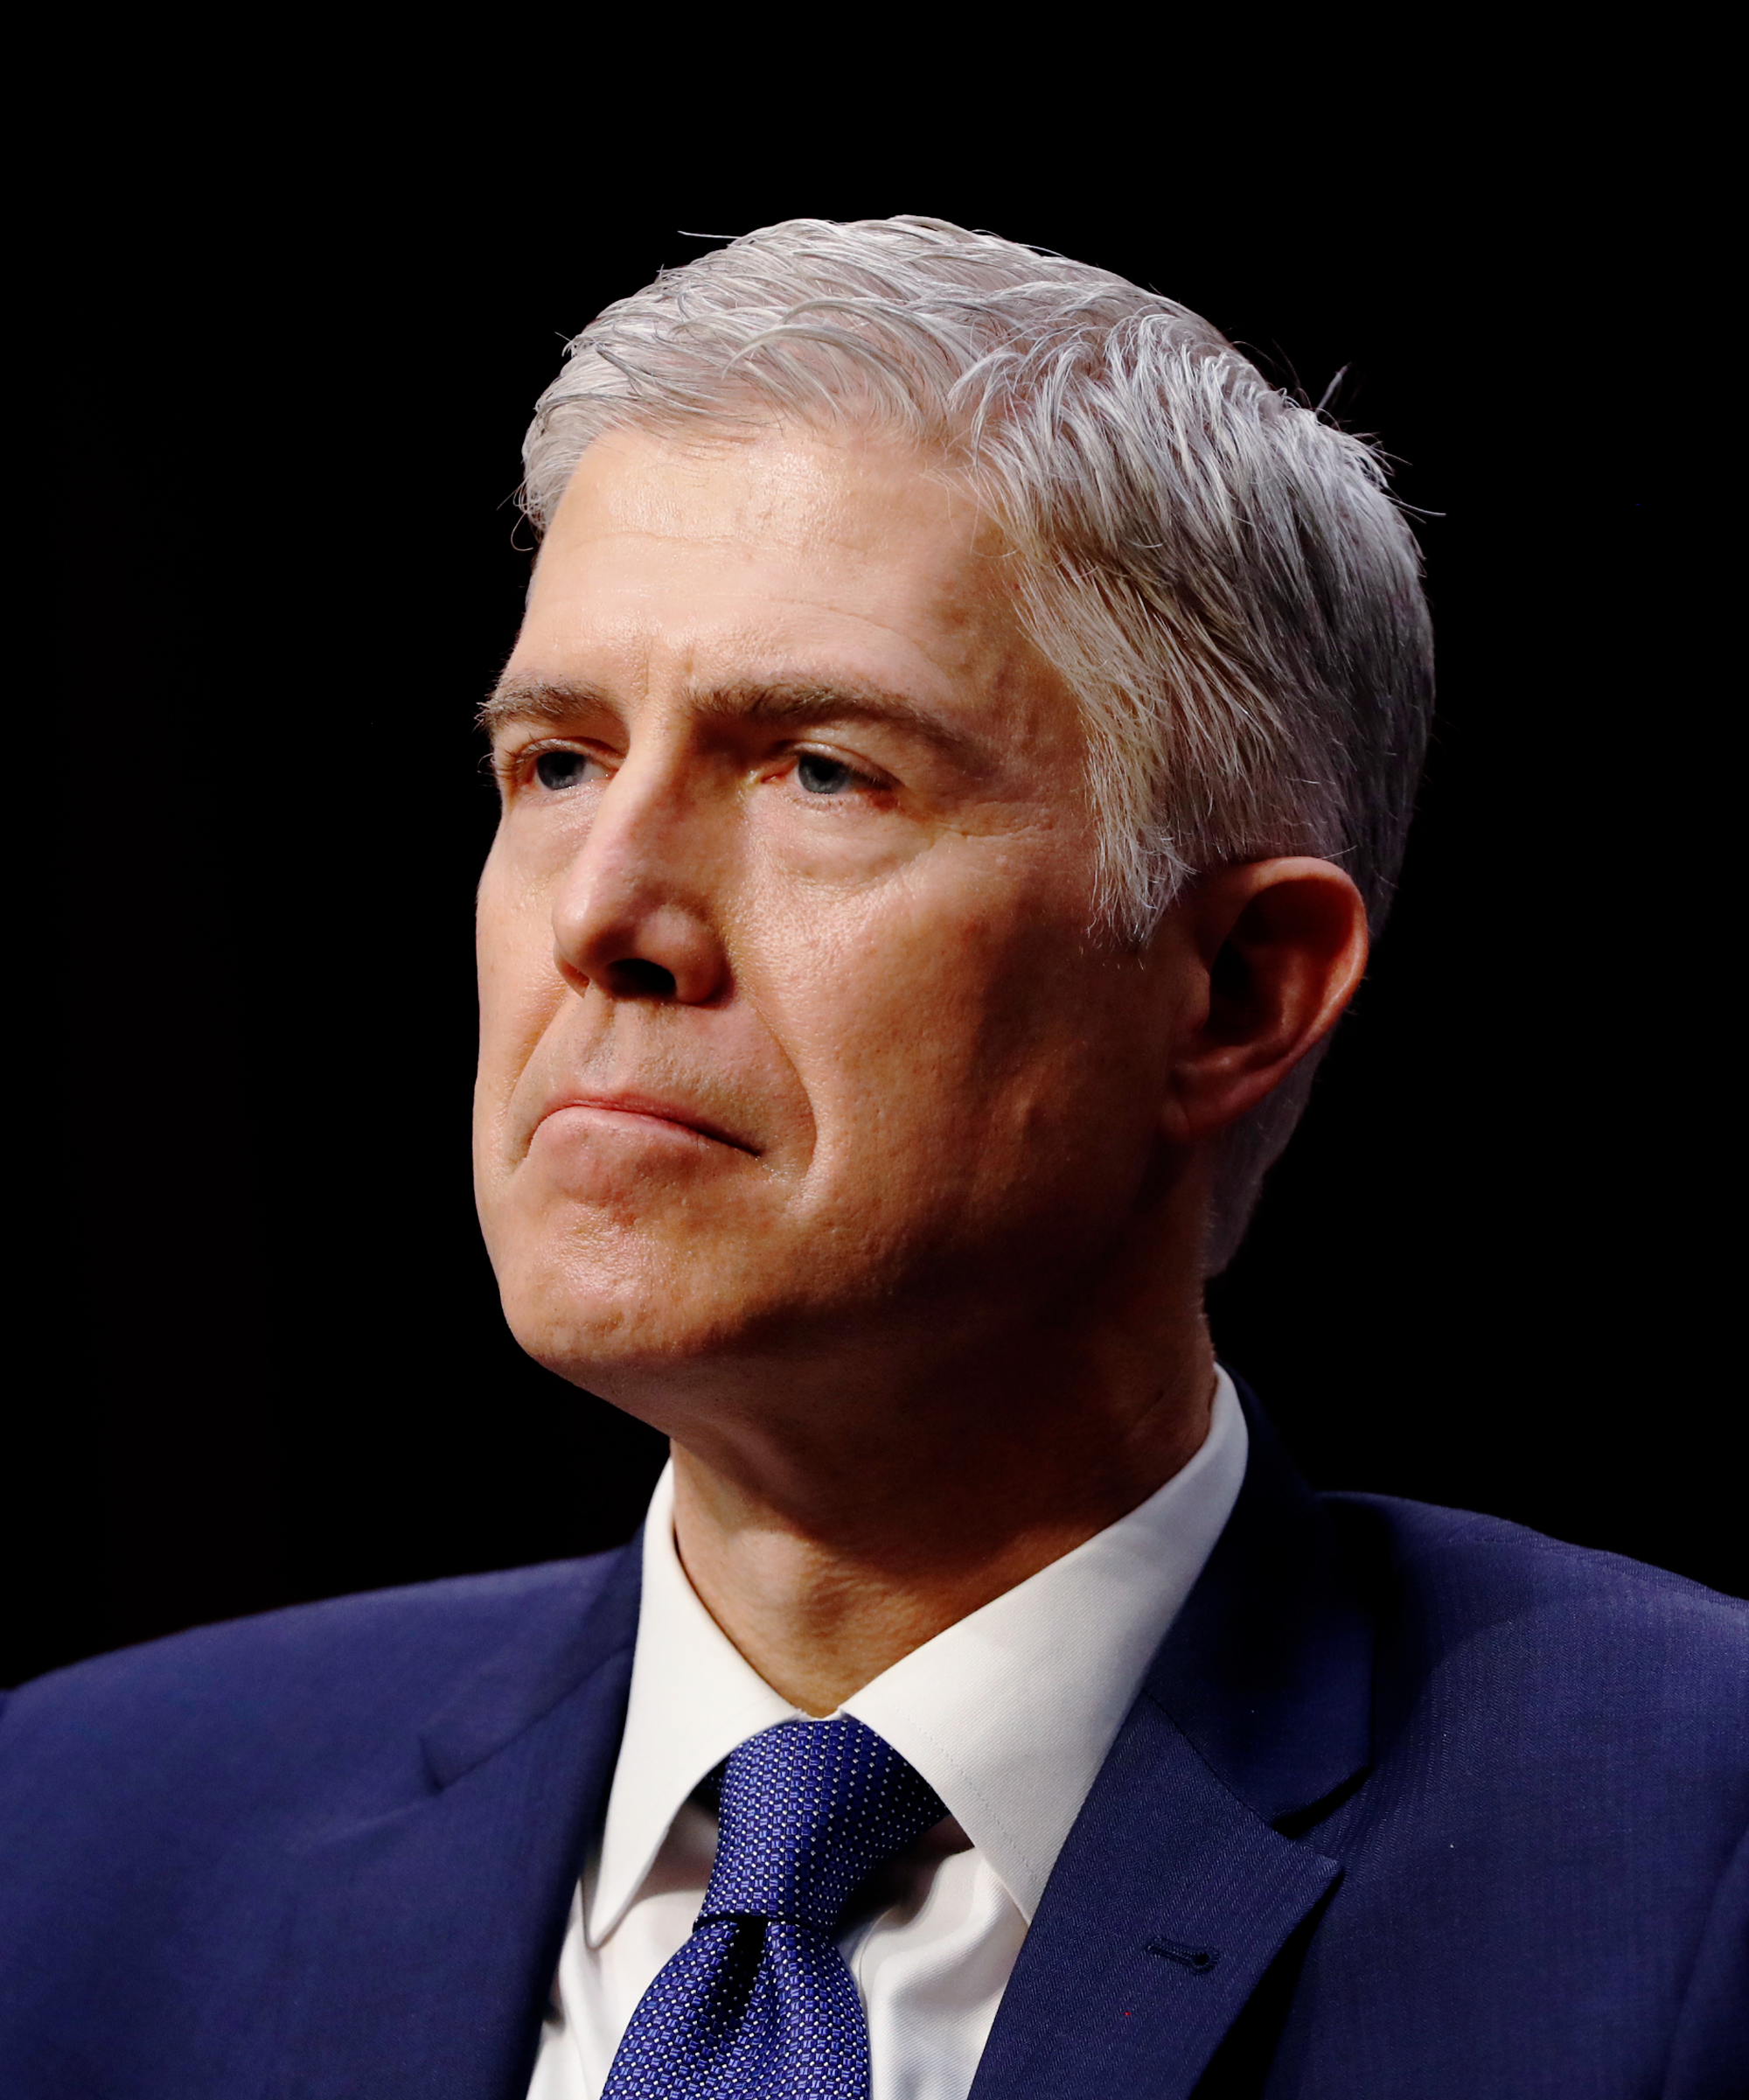 Senate Confirms Judge Neil Gorsuch to Supreme Court